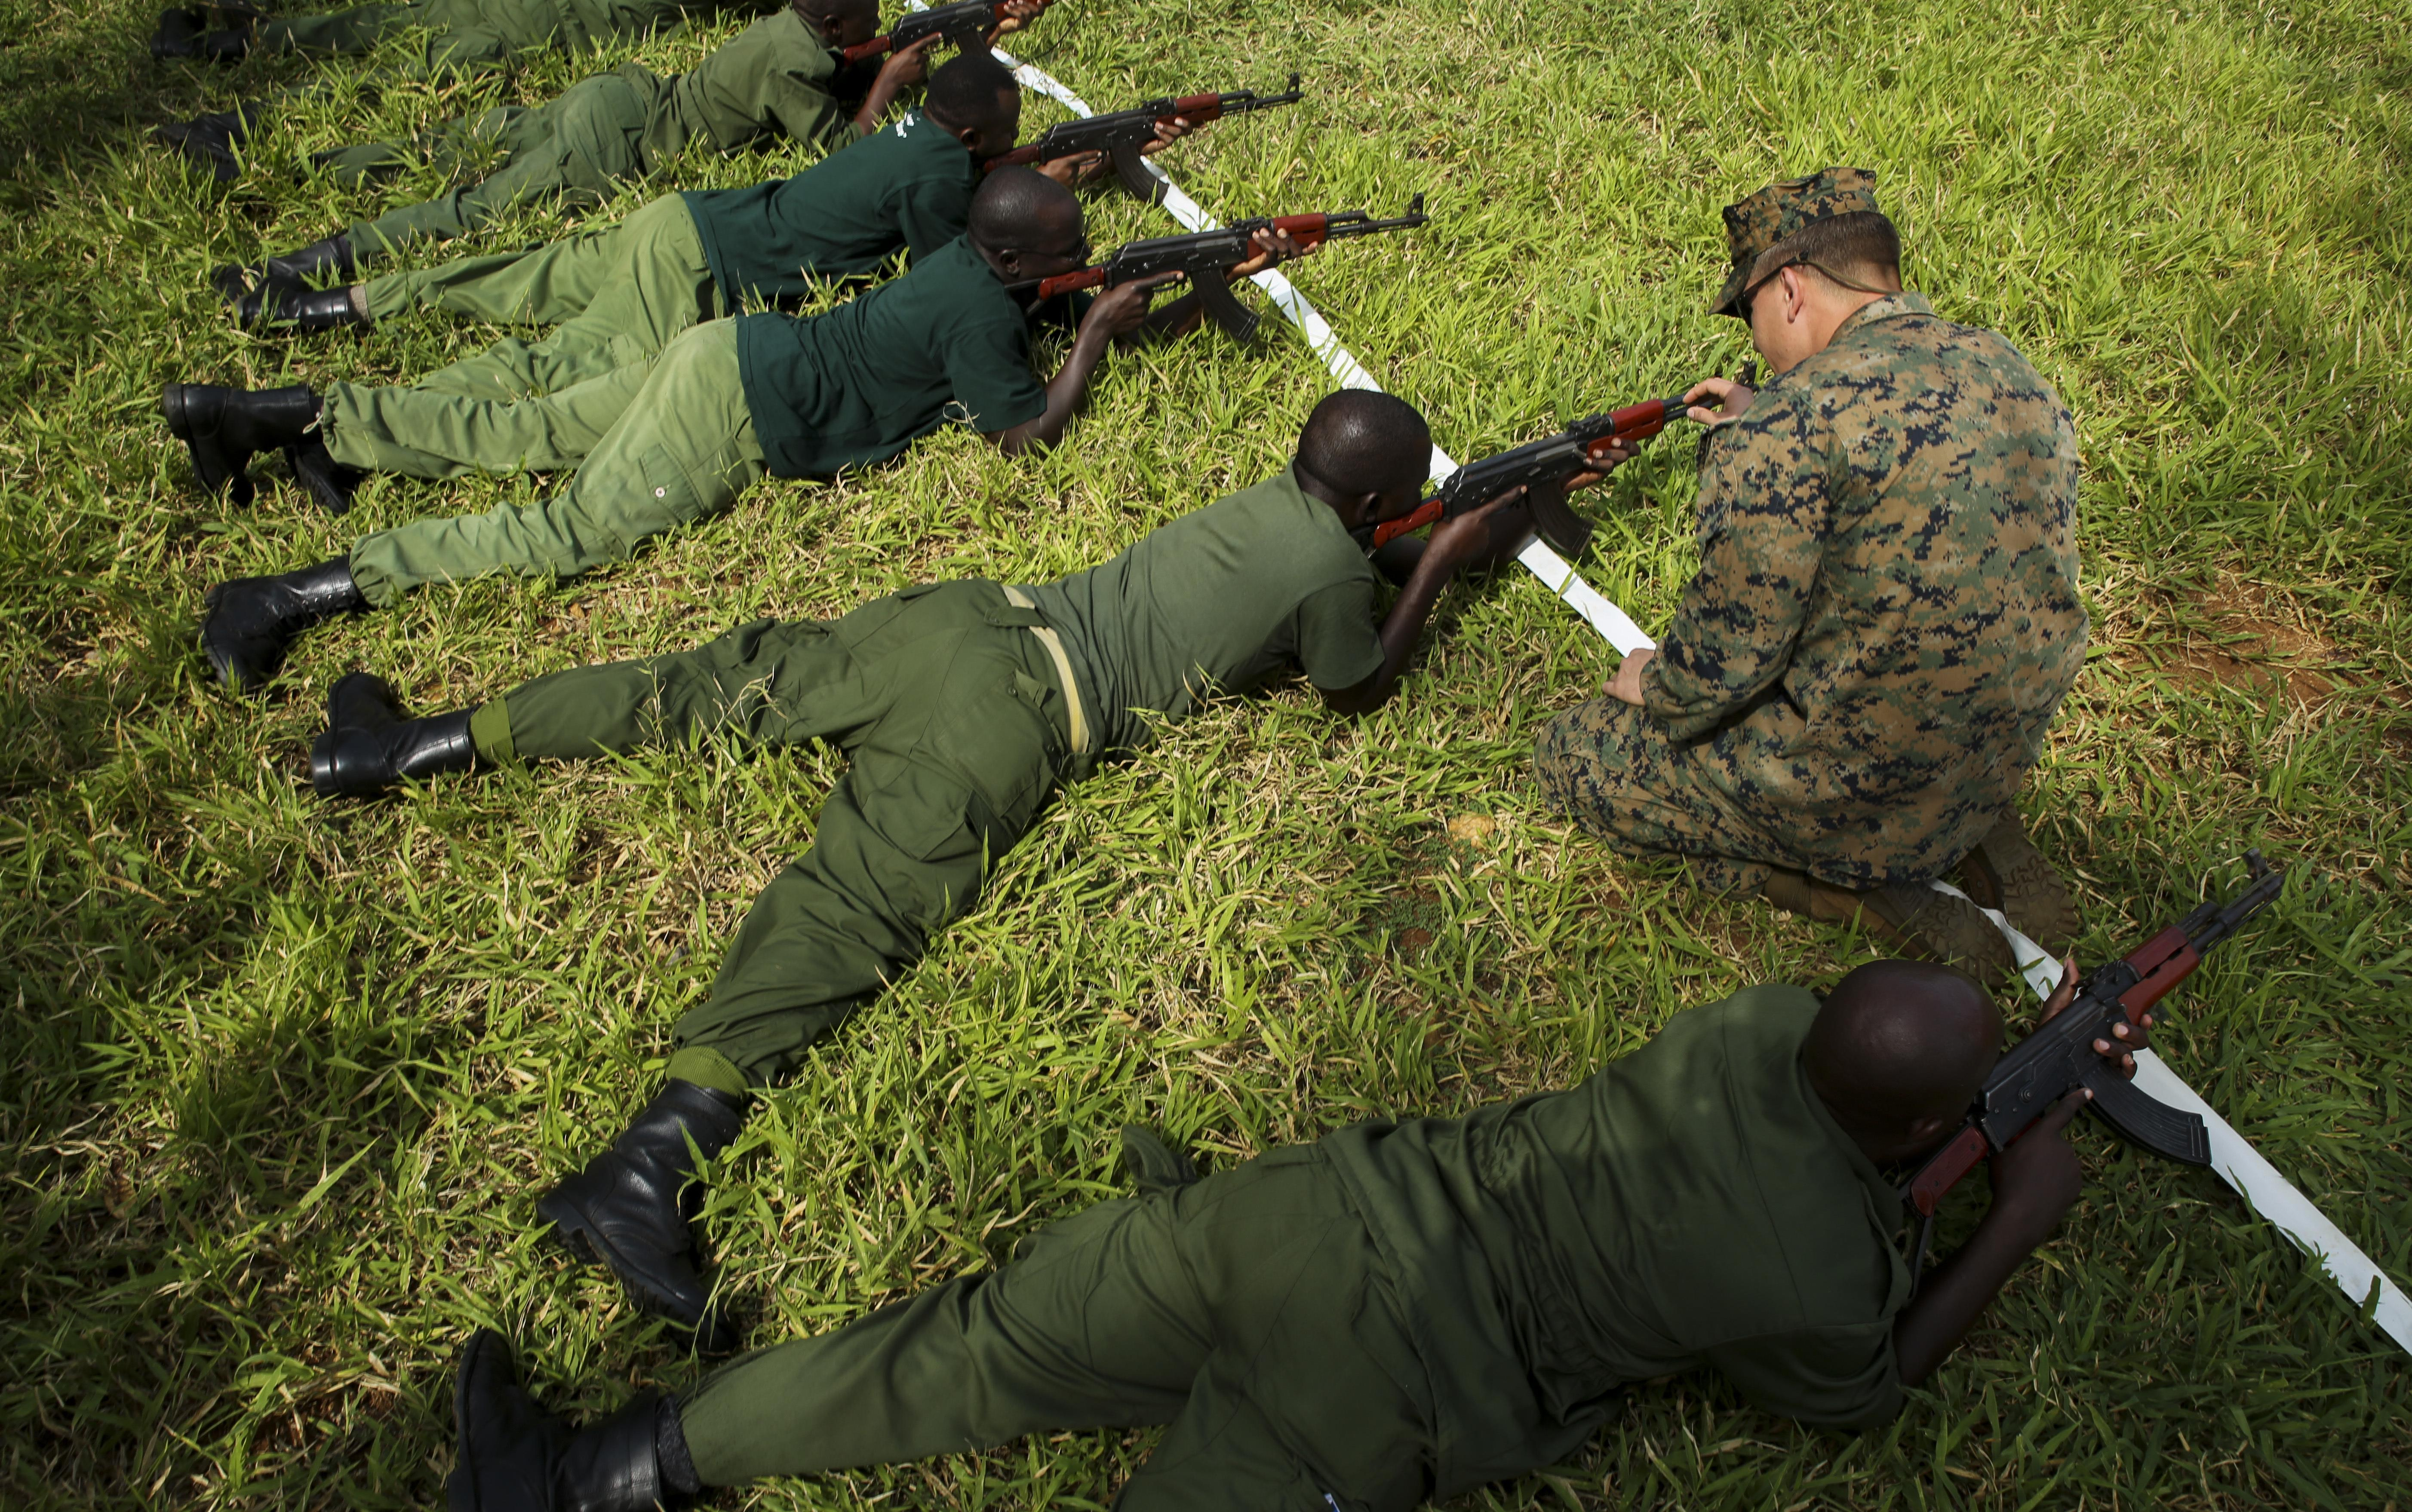 U.S. Marine Sgt. Kyle Kimbriel, right, the noncommissioned officer in charge of the Theater Security Cooperation team with Special-Purpose Marine Air-Ground Task Force Crisis Response-Africa, helps a Tanzanian park ranger aim an AKM assault rifle in the prone position during a combat marksmanship class at the Selous Game Reserve in Matambwe, Tanzania, March 3, 2015. The Marines and Sailors will spend the next several weeks teaching the Tanzanian park rangers infantry skills such as patrolling, offensive tactics, land navigation and mounted operations to aid in countering illicit trafficking. (U.S. Marine Corps photo by Lance Cpl. Lucas J. Hopkins/Released)